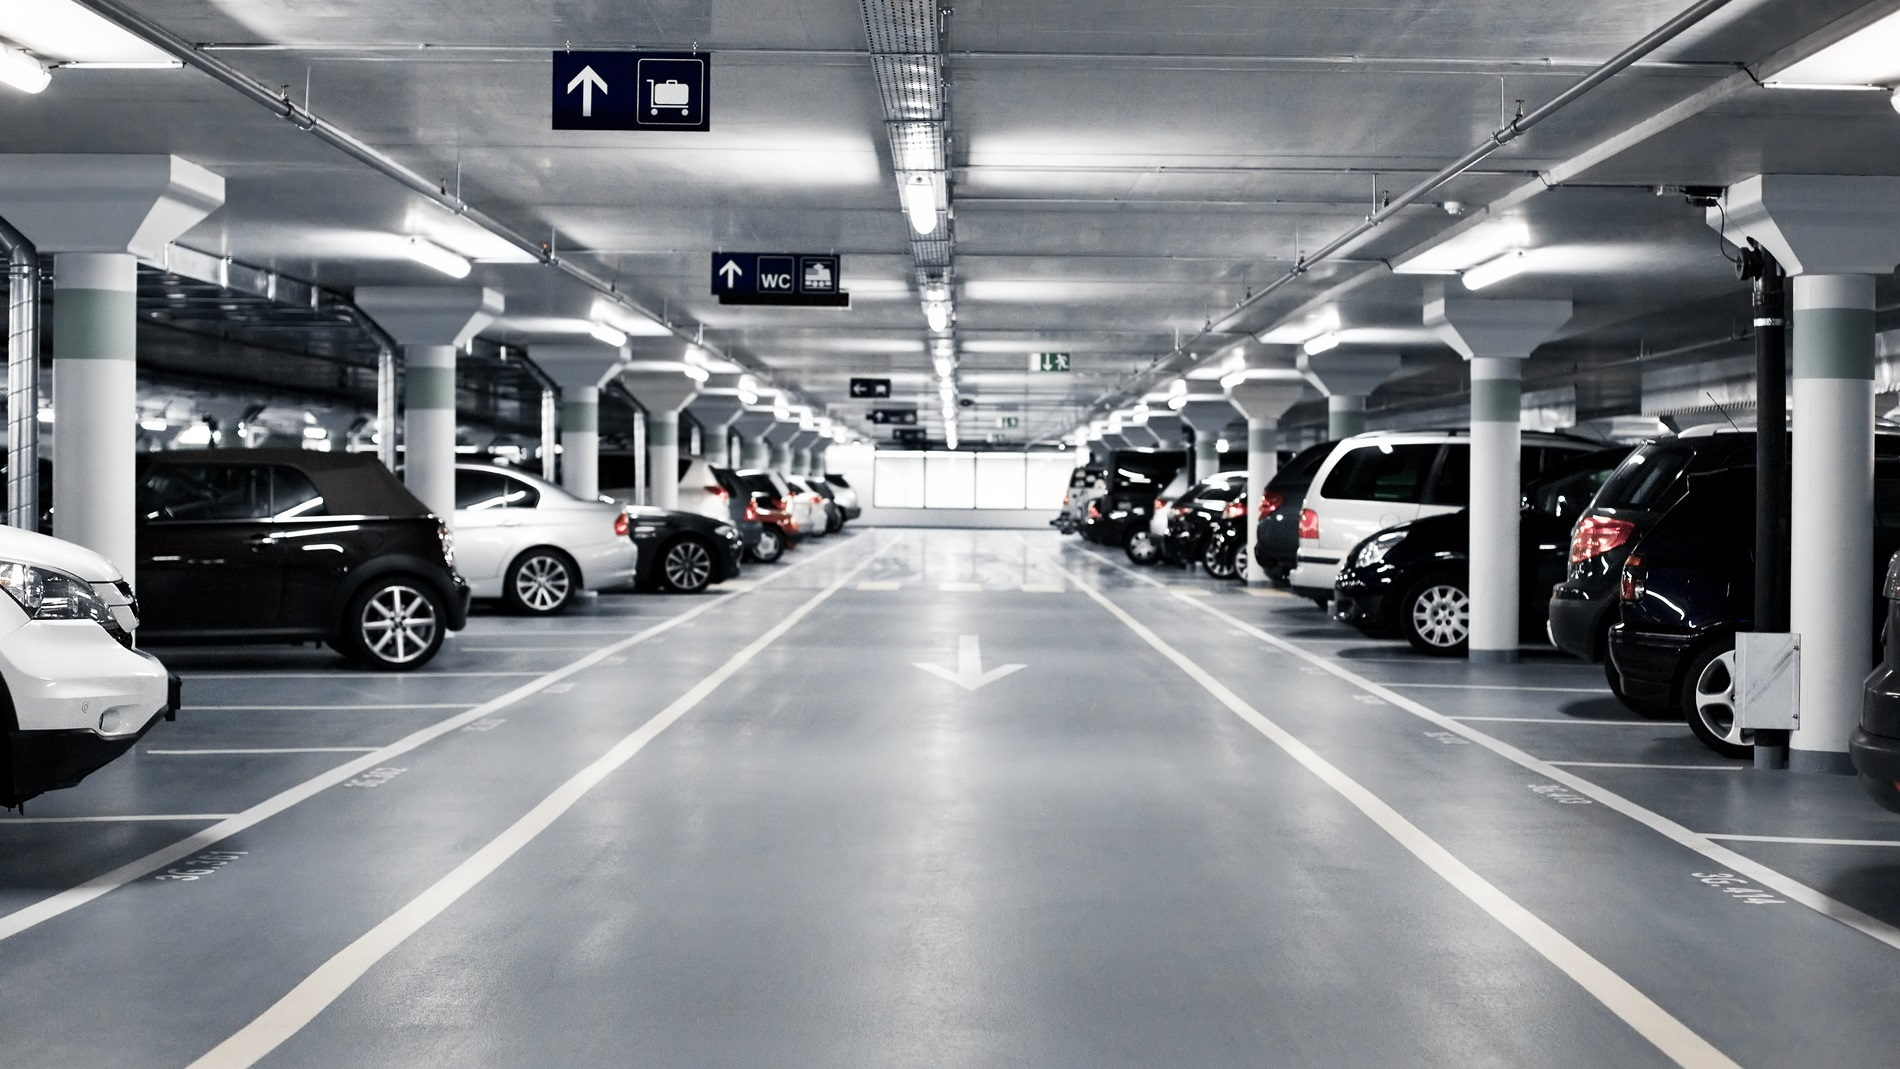 Parking Paperworld Middle East